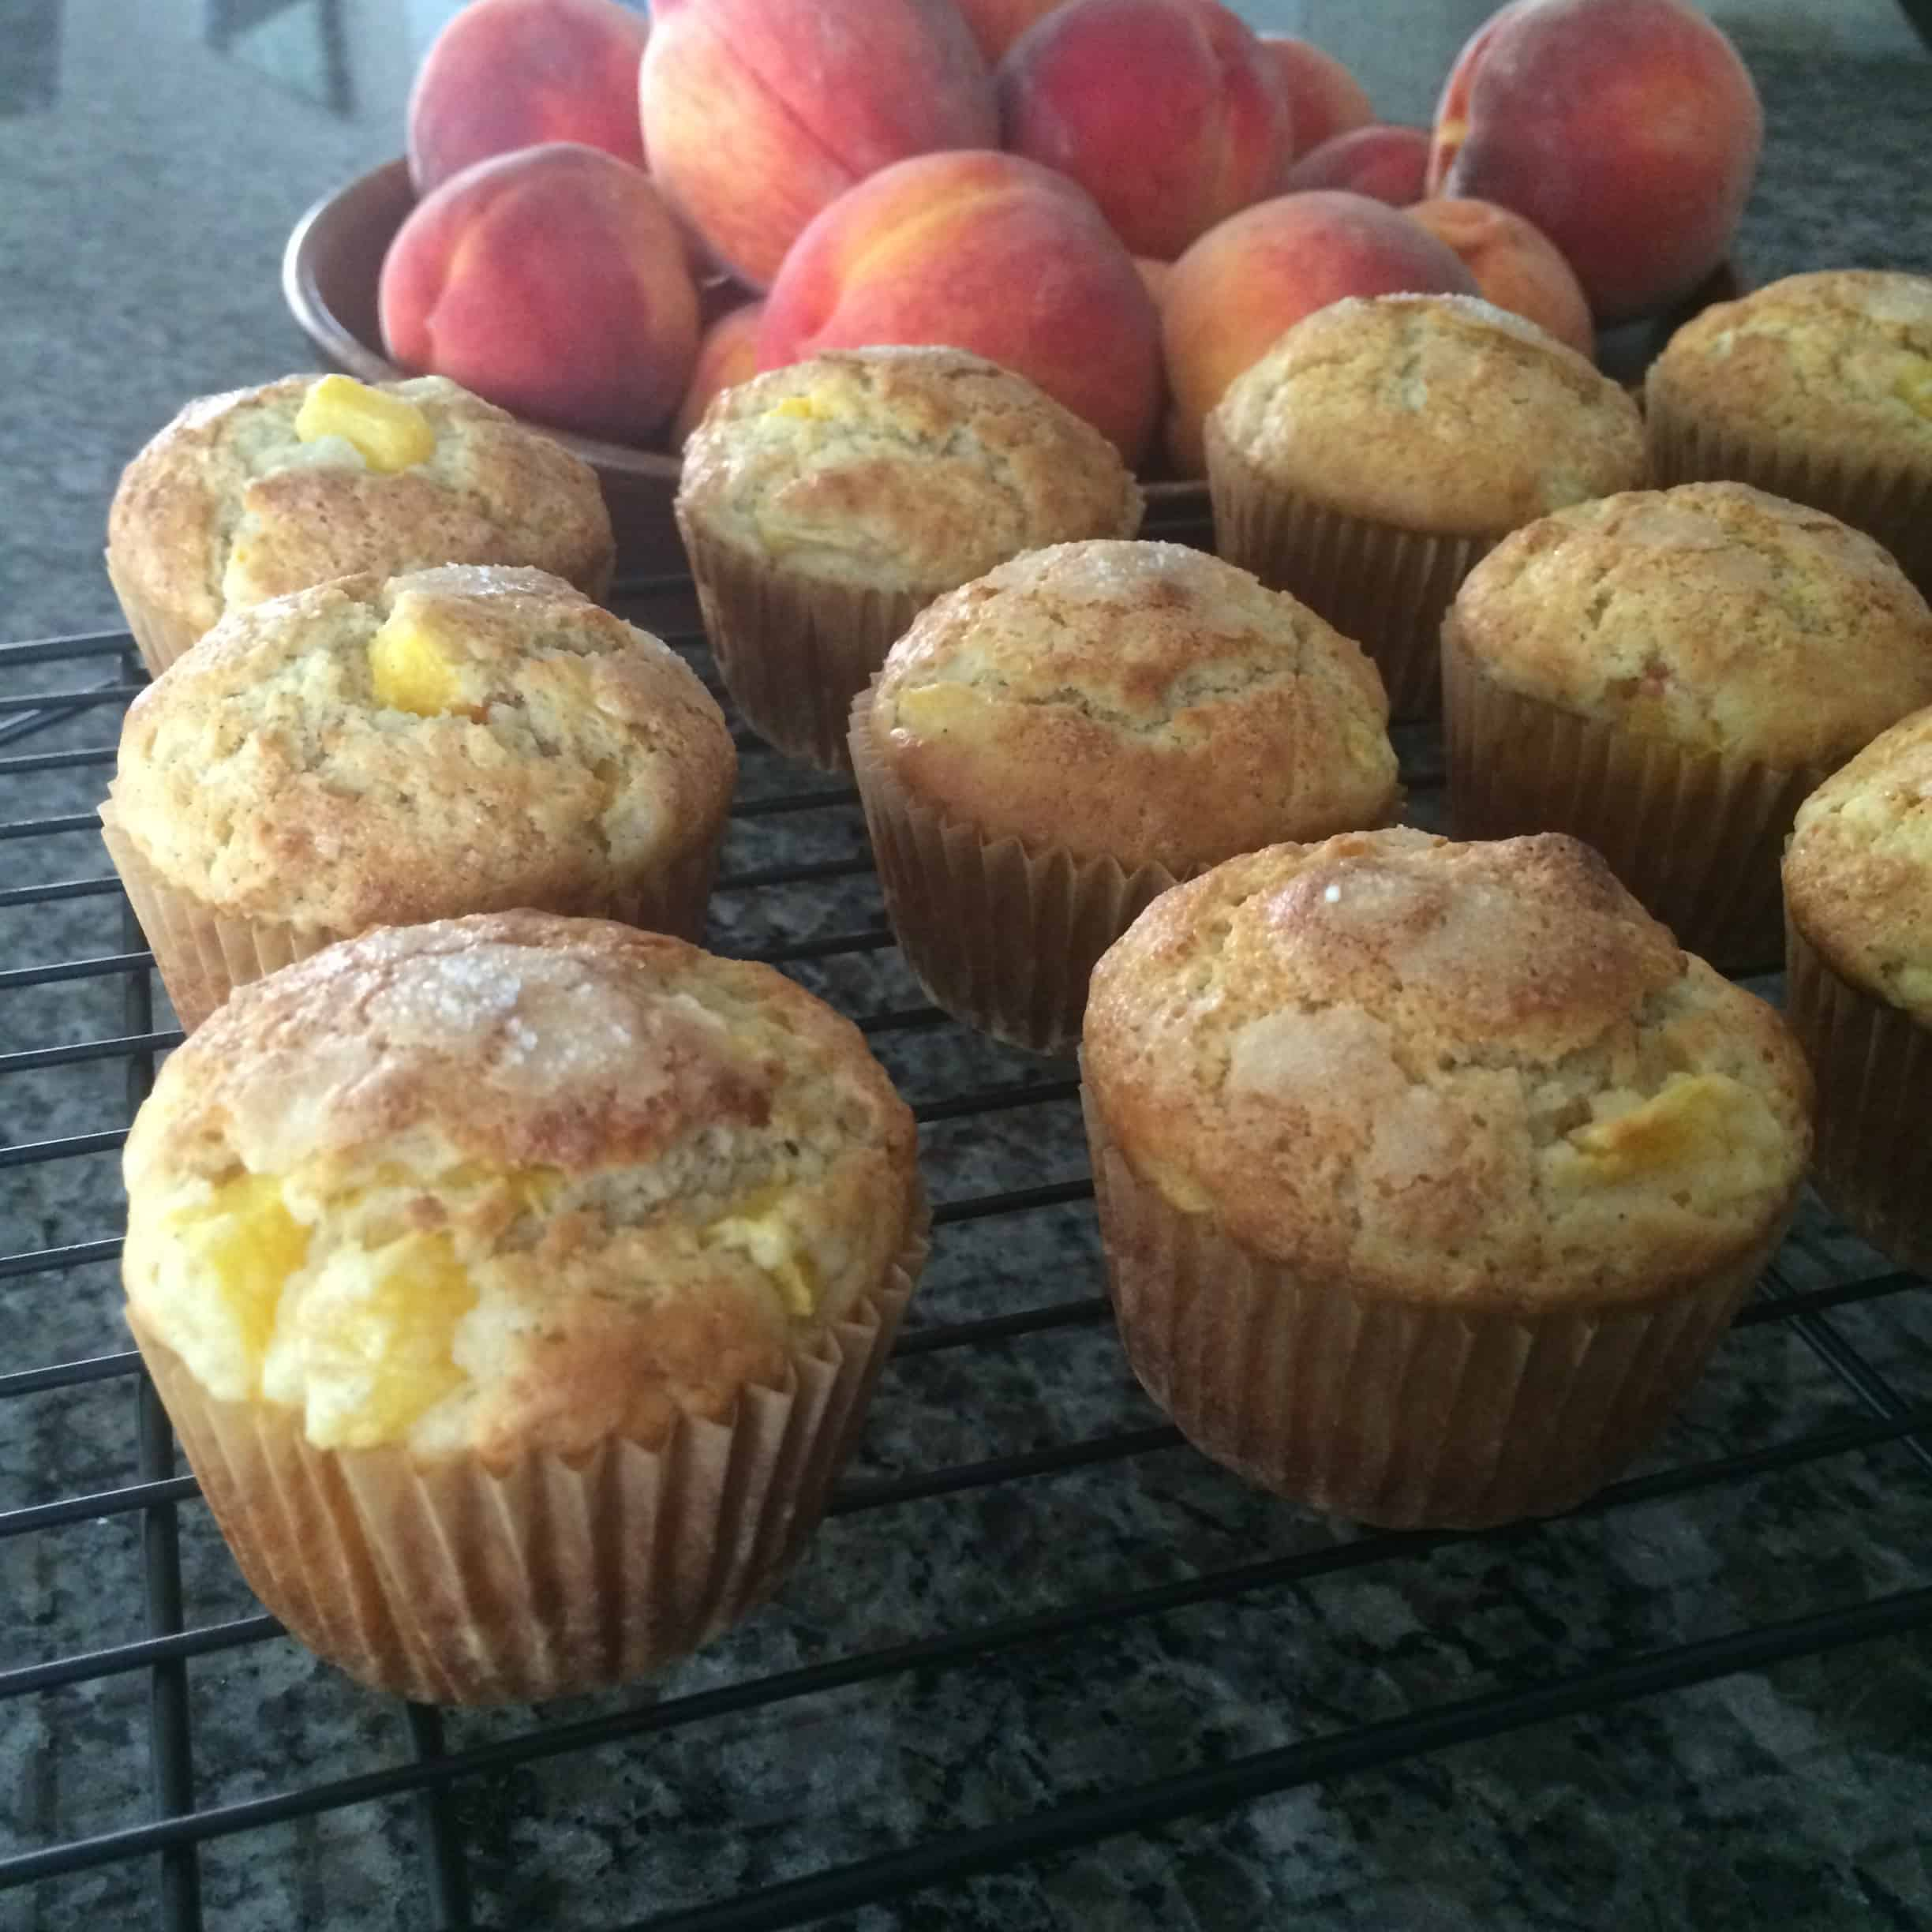 Freshly baked peach muffins